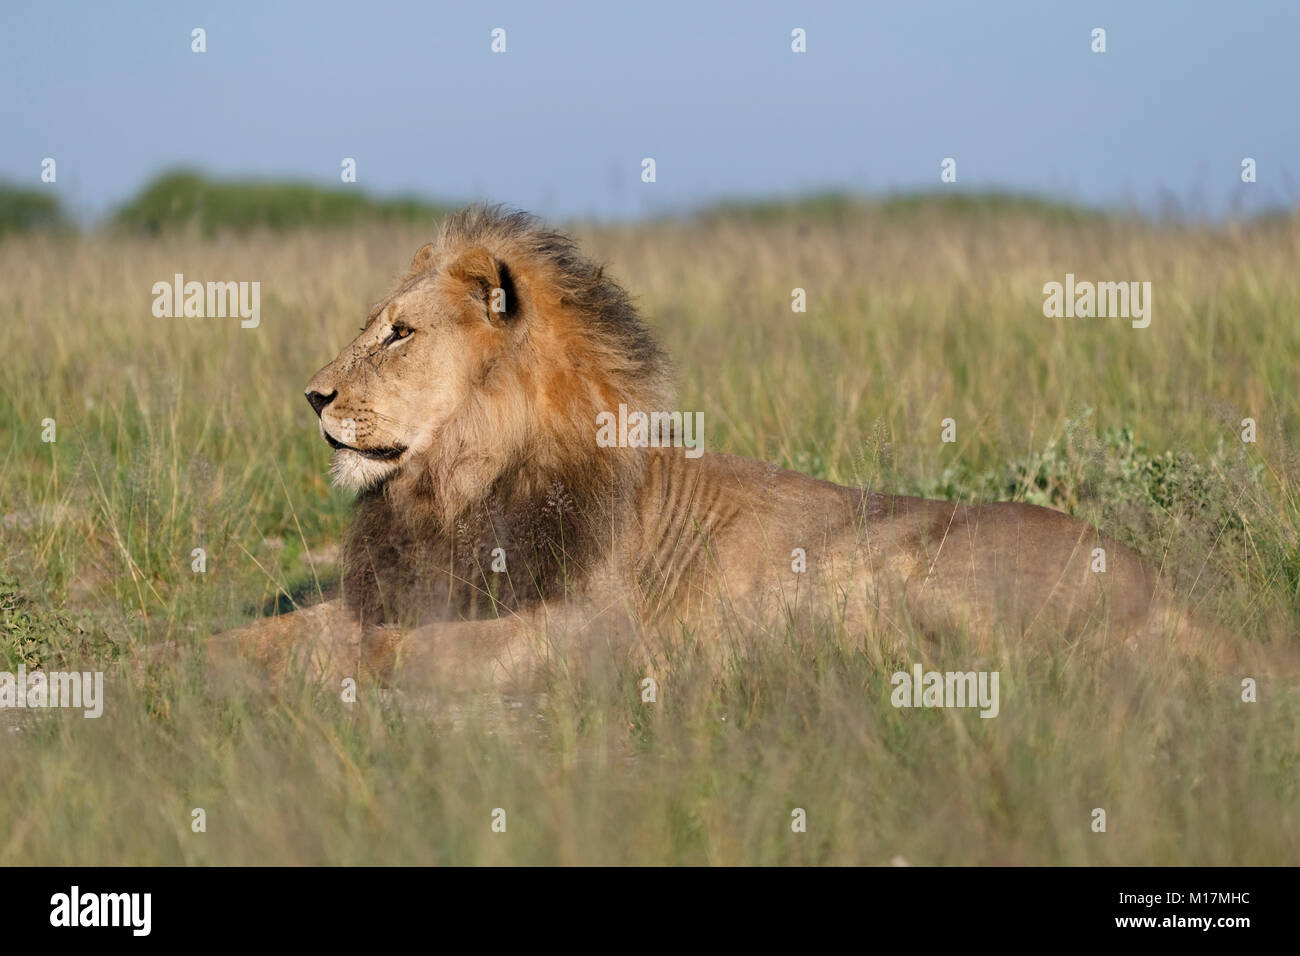 big male lion lying in long grass in Central kalahari Game Reserve in Botswana, looking for prey, looking around - Stock Image